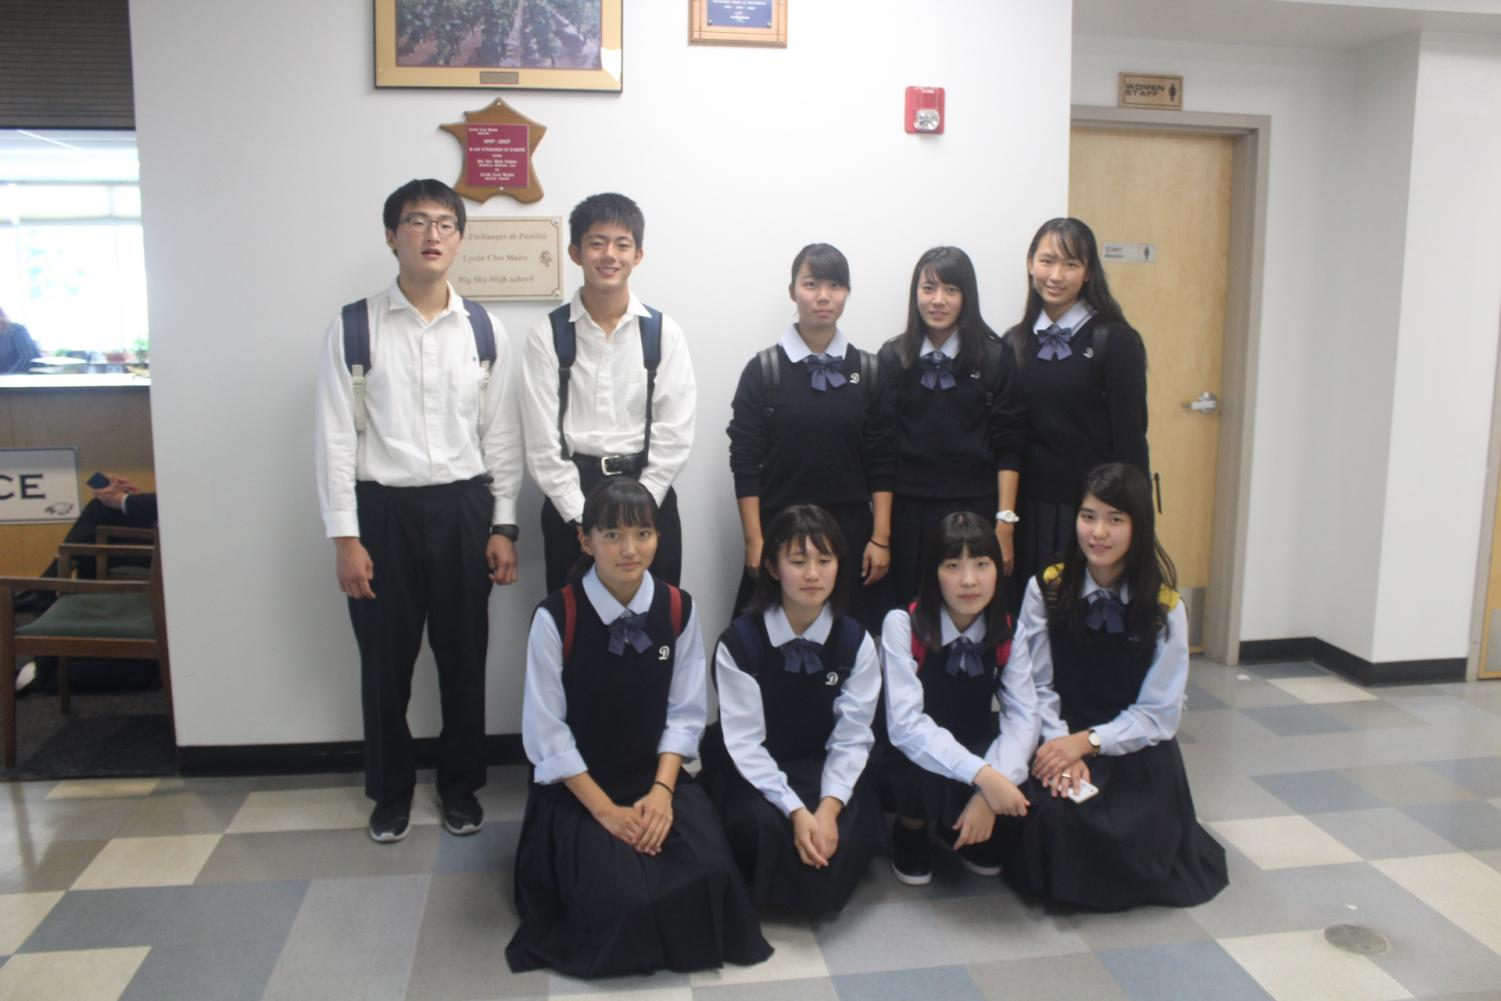 Students from Daini High School in Kumamoto, Japan, pose for a photo near the main office.